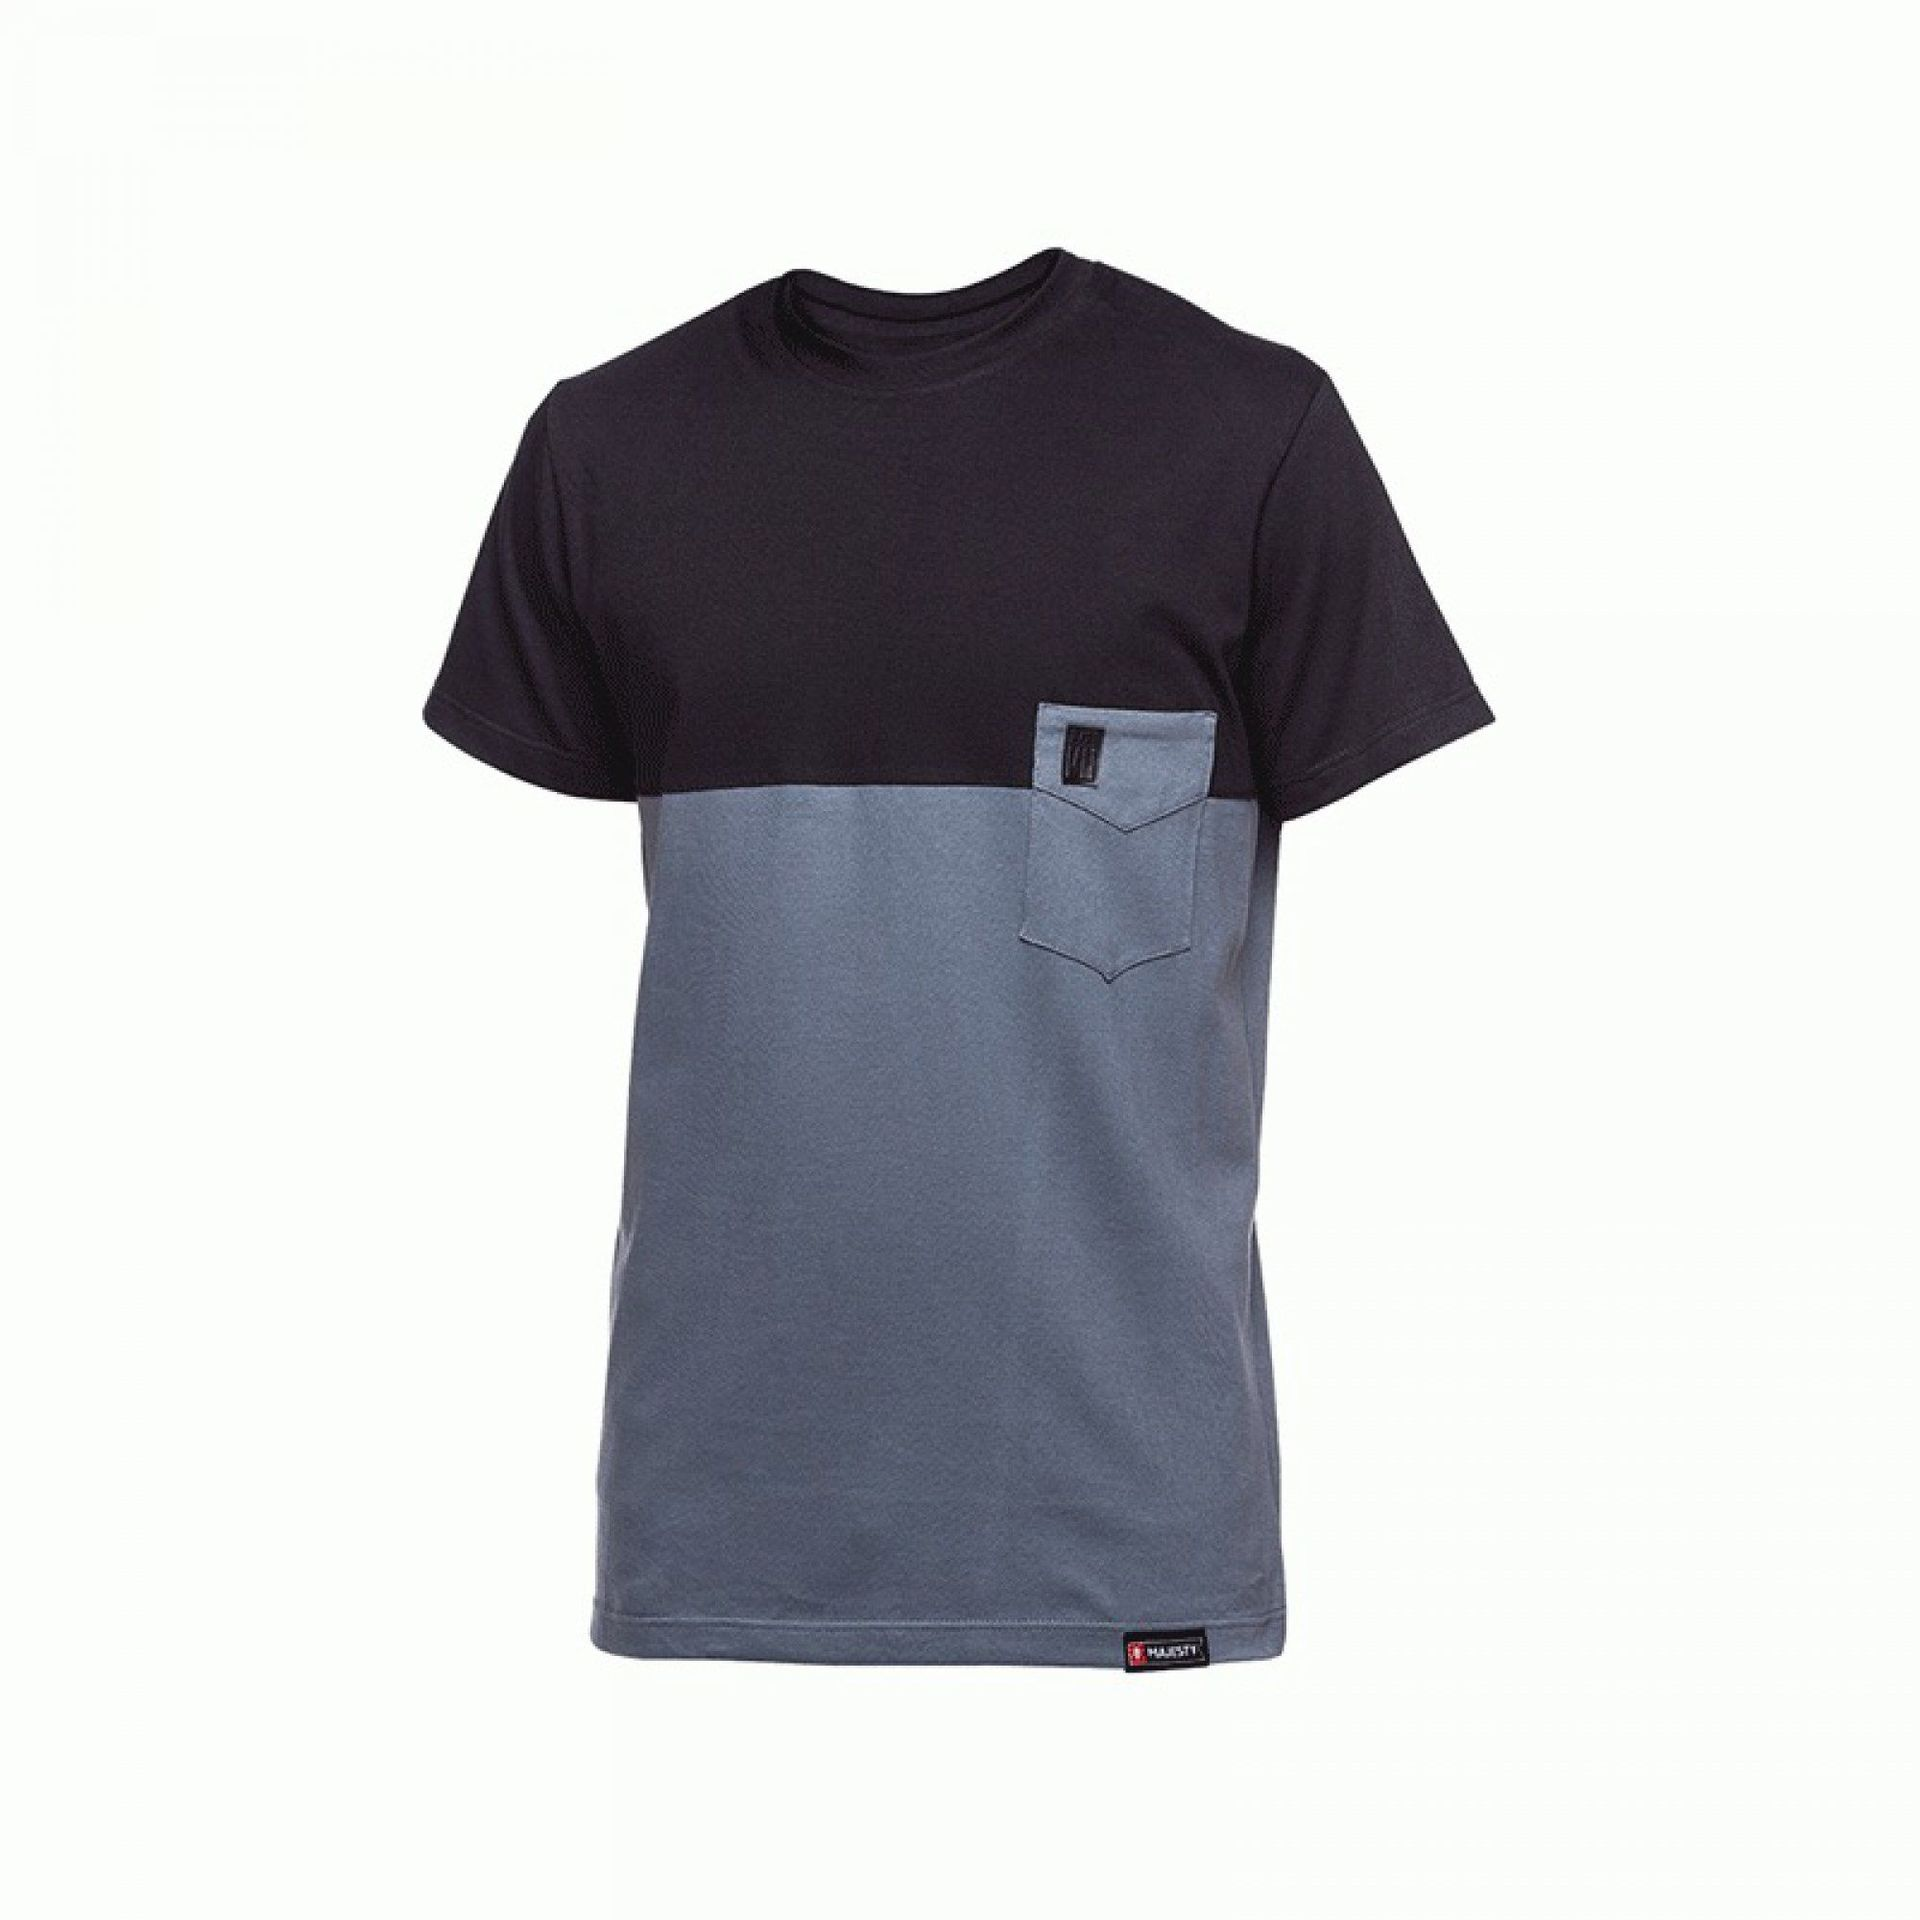 T-SHIRT MAJESTY DOPPLER BLACK|GREY